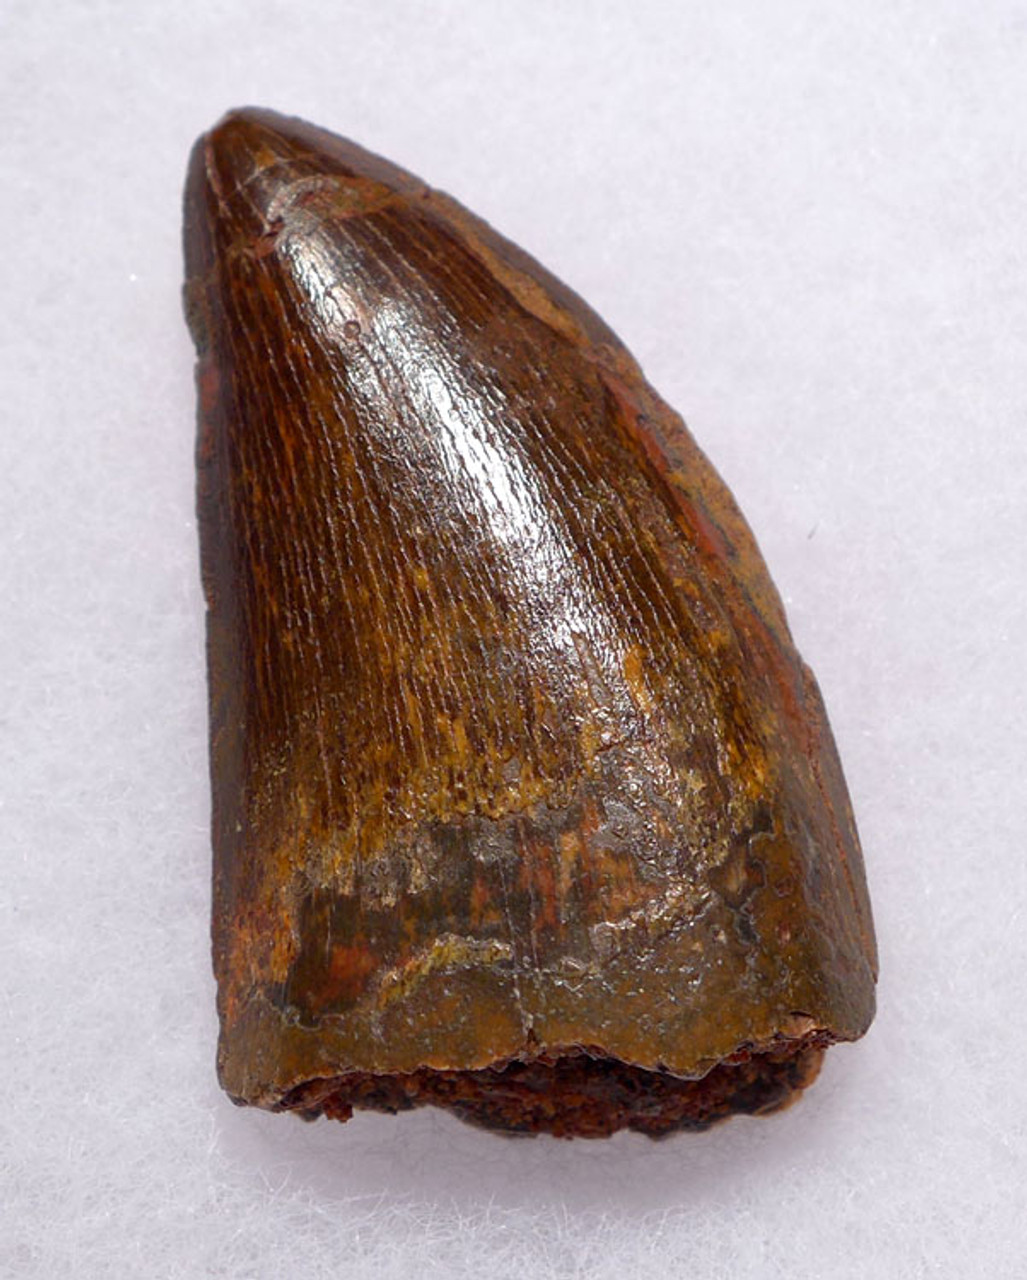 DT2-075 - 1.9 INCH CARCHARODONTOSAURUS FOSSIL TOOTH FROM THE LARGEST MEAT-EATING DINOSAUR